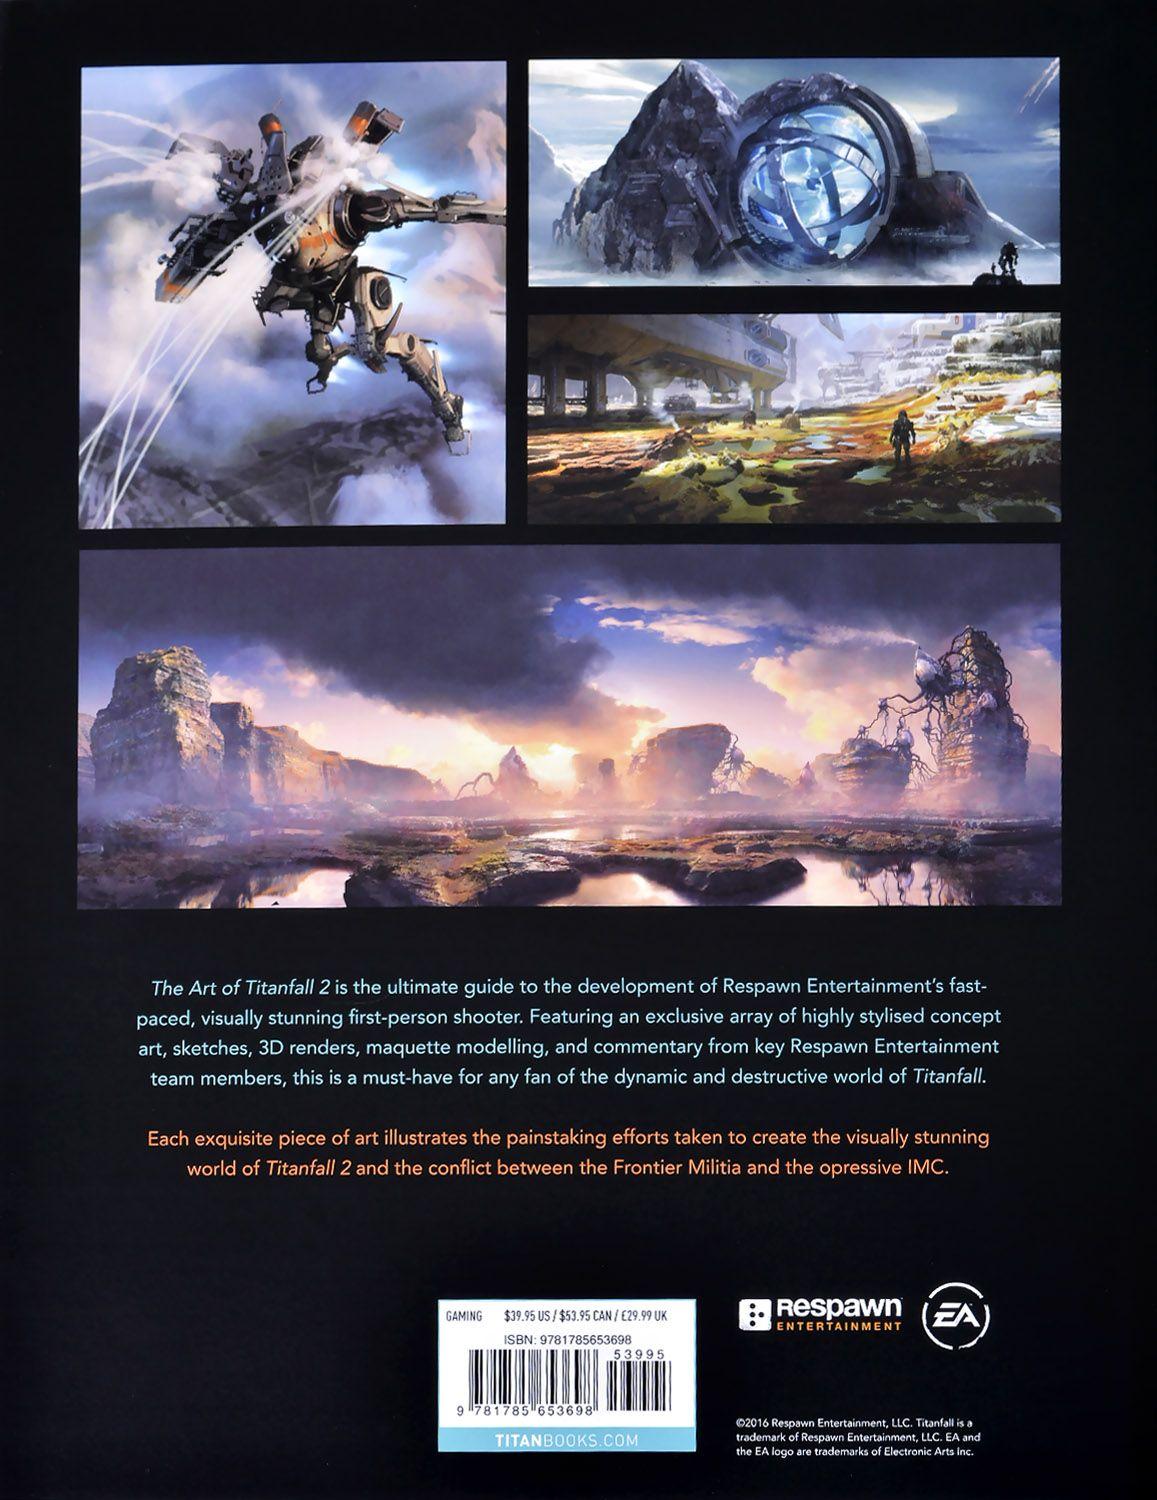 The Art of Titanfall 2 - 3